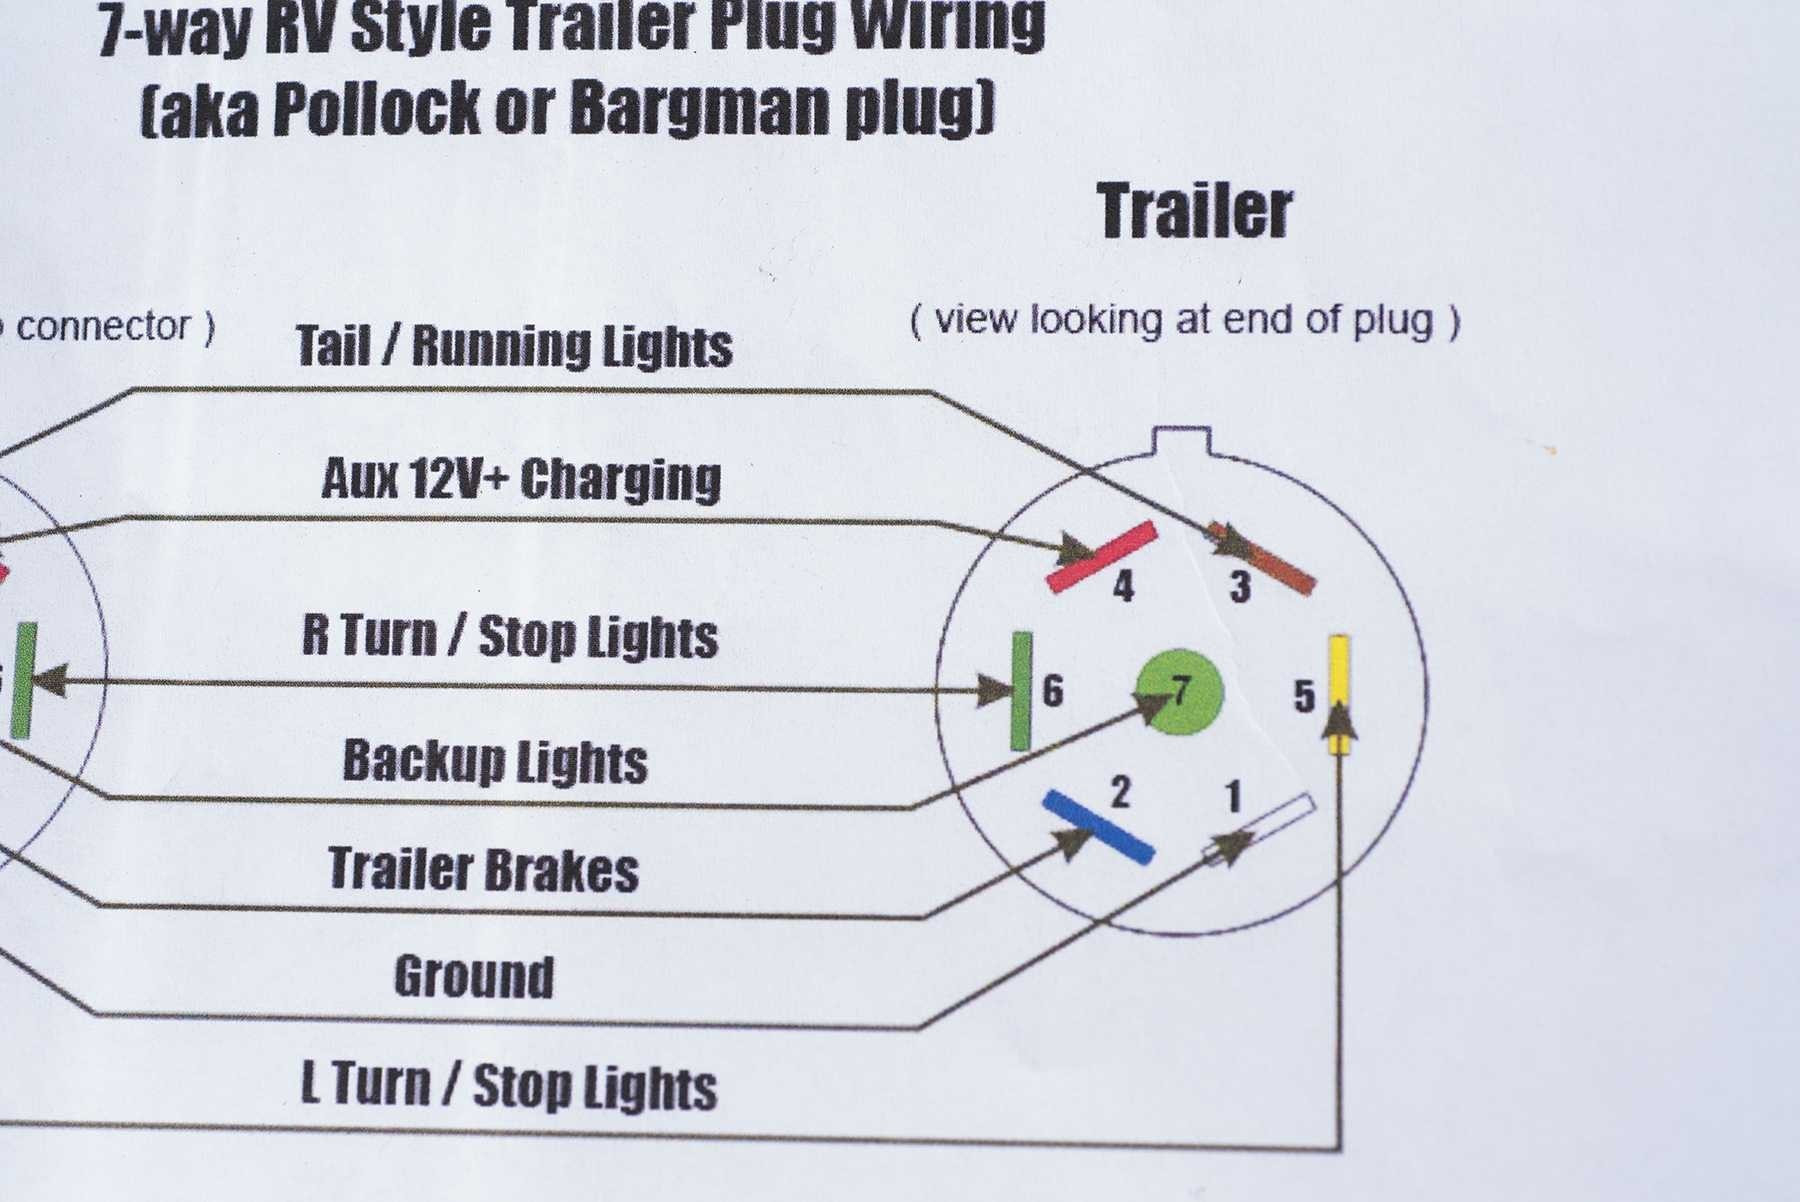 Hopkins Trailer Connector Wiring Diagram Reference Wiring Diagram - Receptacle Wiring Diagram